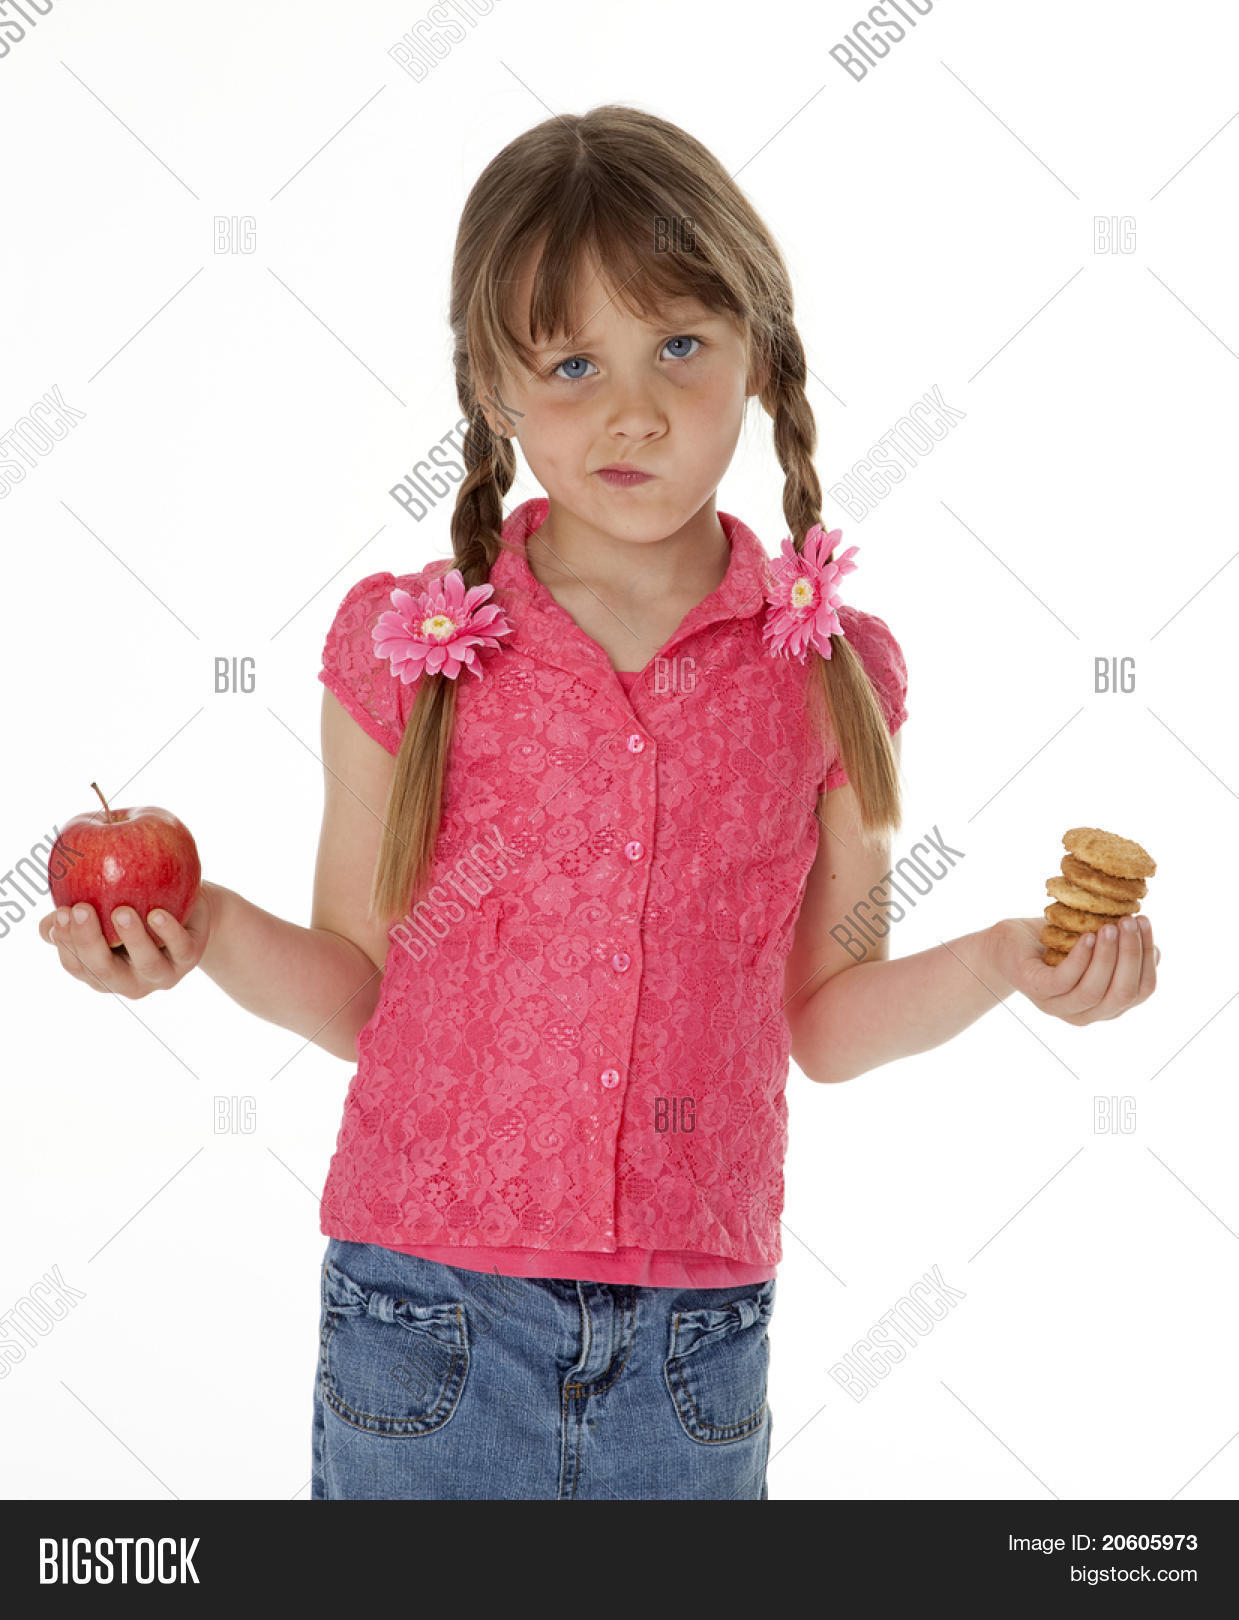 7 Year Old Girl Image Amp Photo Free Trial